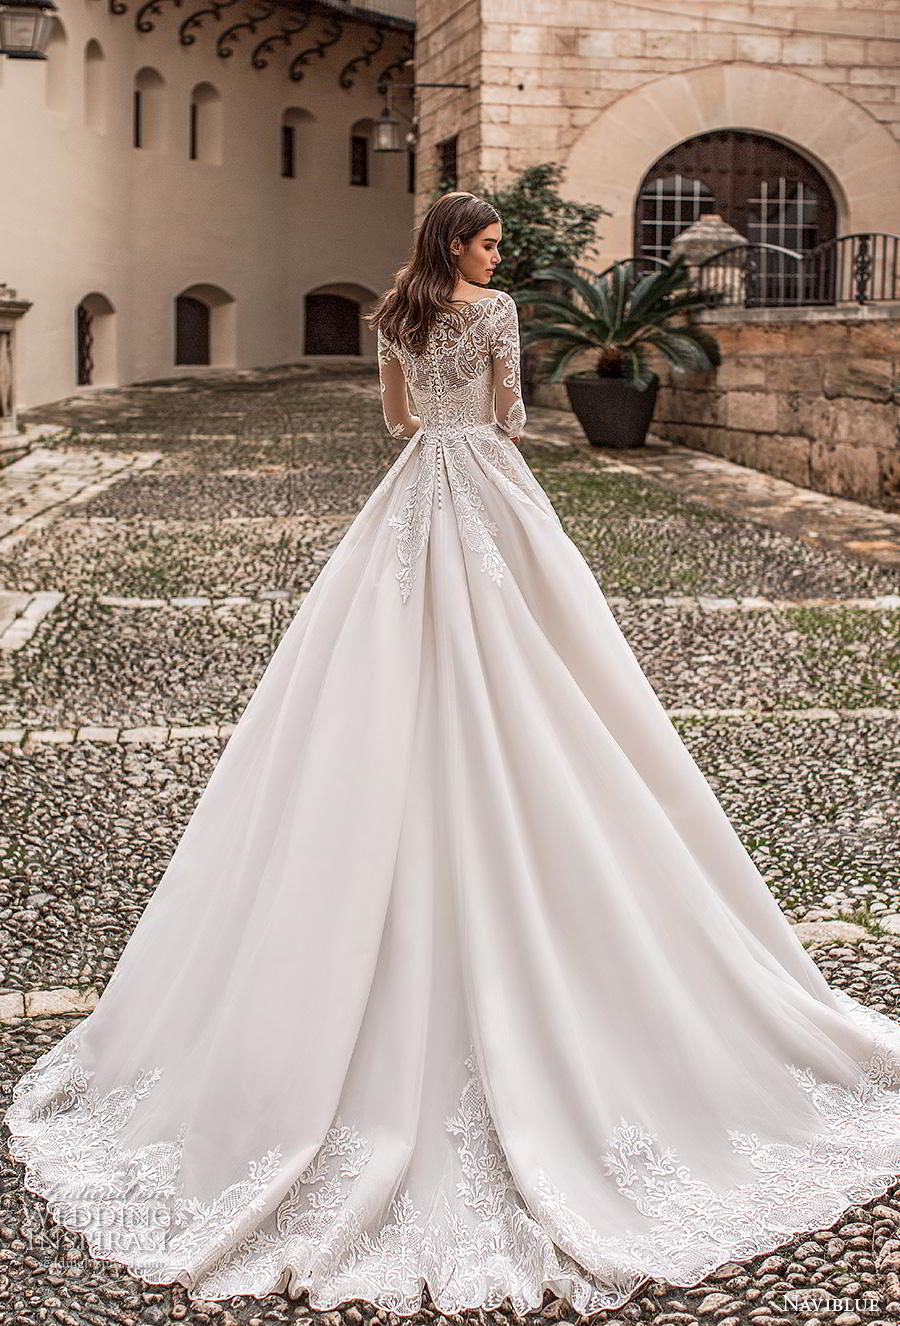 naviblue 2019 bridal long sleeves illusion off the shoulder sweetheart neckline heavily embellished bodice princess romantic a line wedding dress lace back chapel train (8) bv